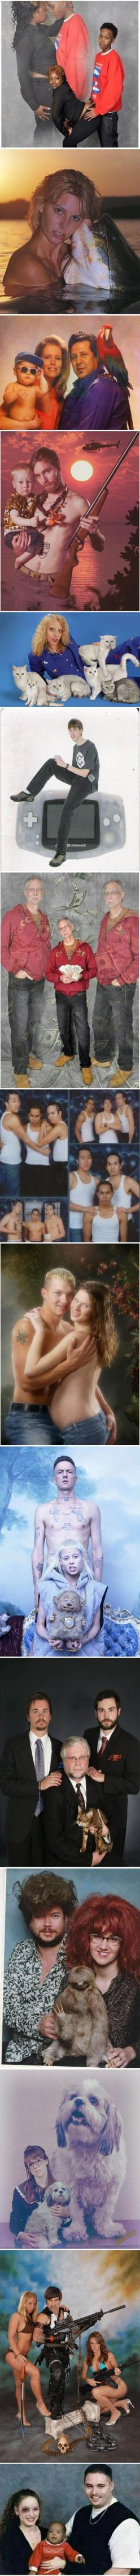 I don't understand...: Picture, Ummm What, Giggle, Cant, Be Real, Awkward Family Photos, Awkward Photos